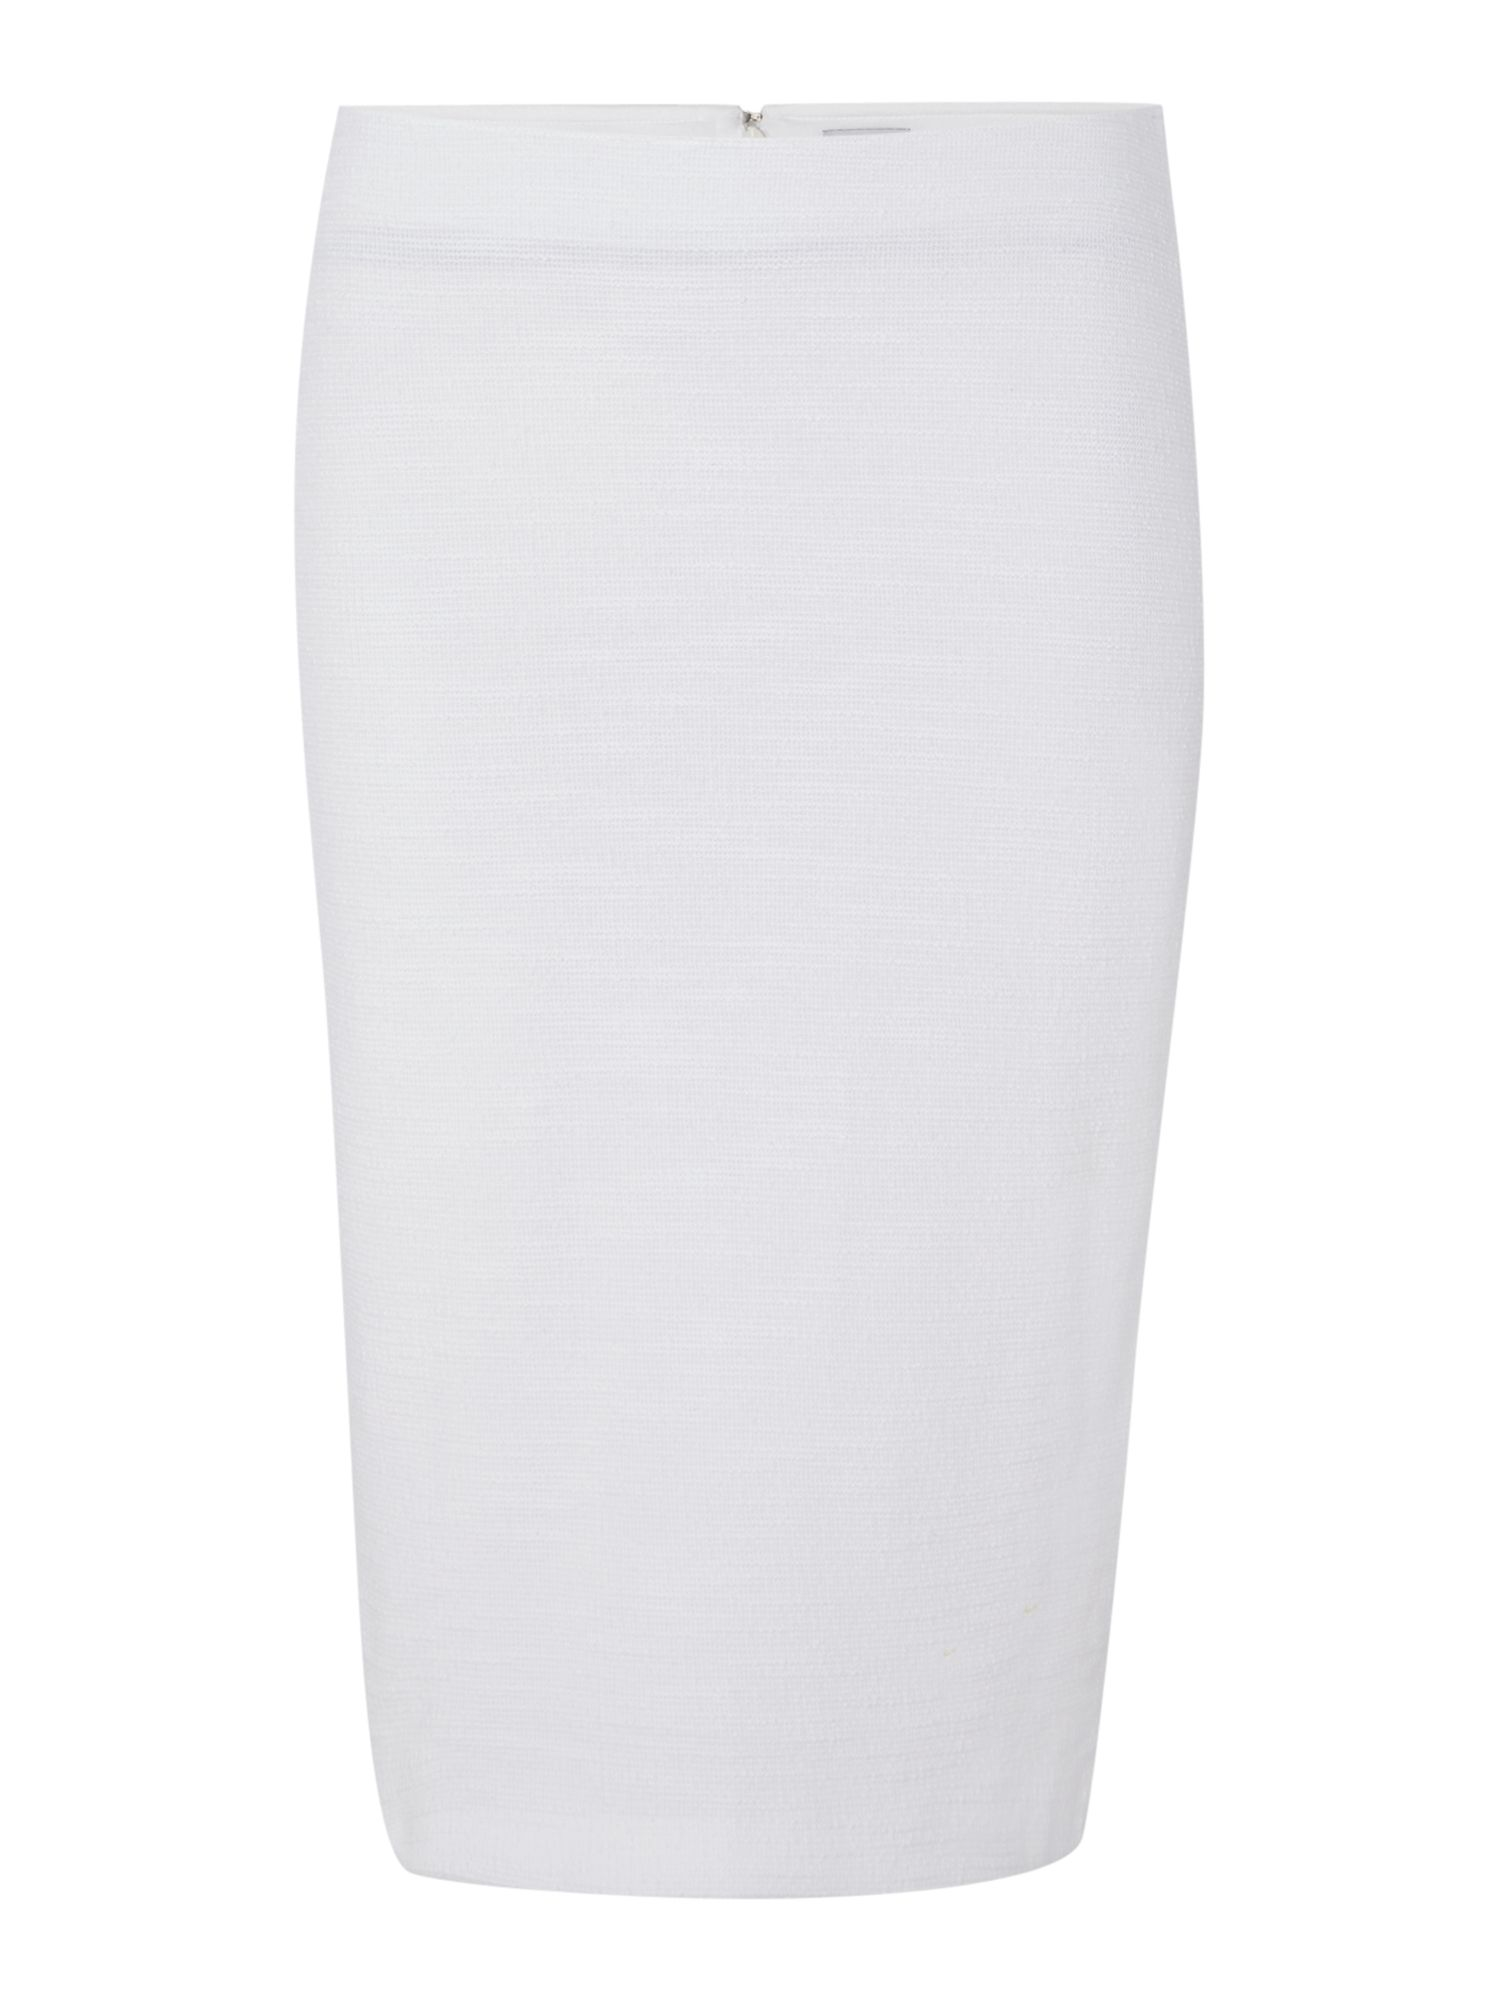 Armani Cotton Pencil Skirt in White | Lyst